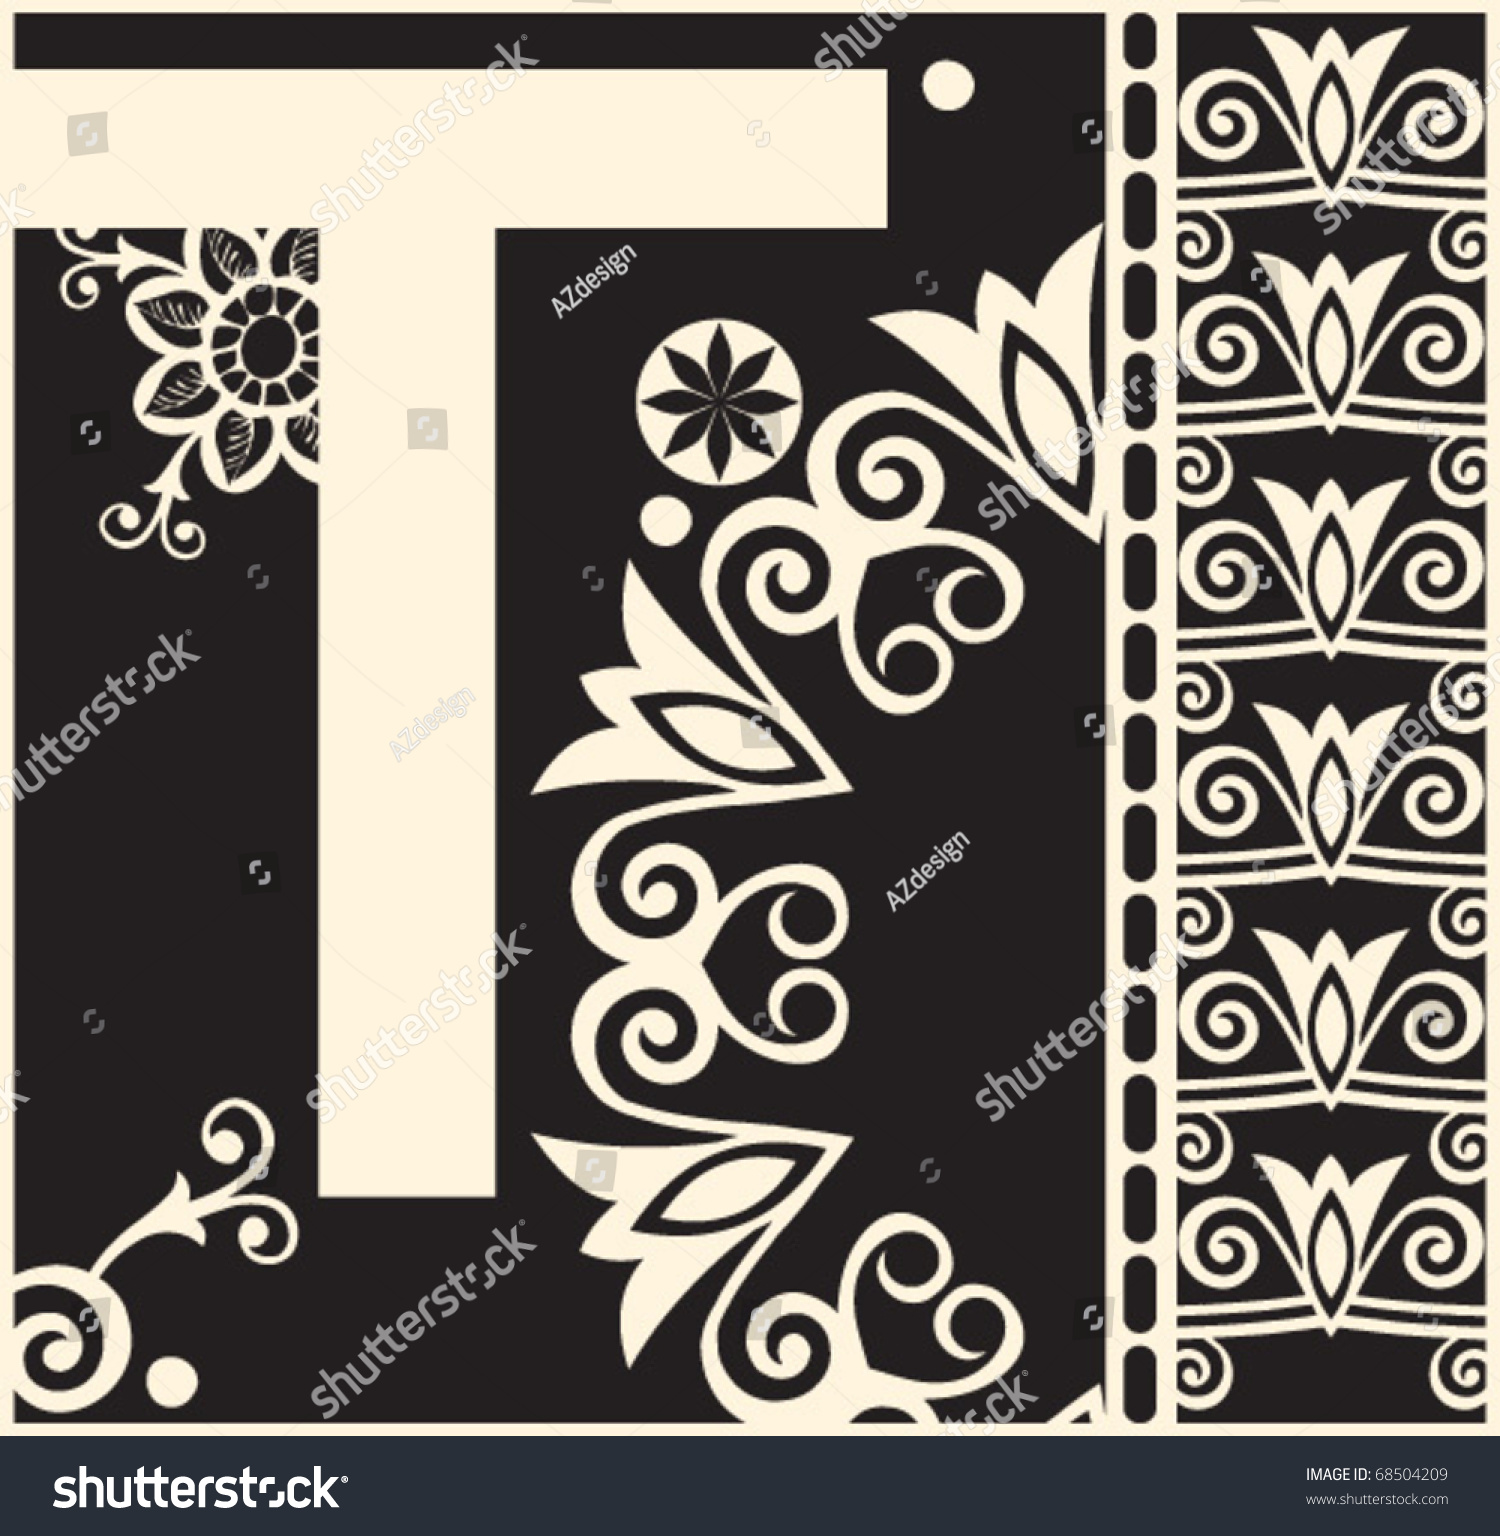 Ornamental Vector Abc, Decorative Letter T - 68504209 : Shutterstock